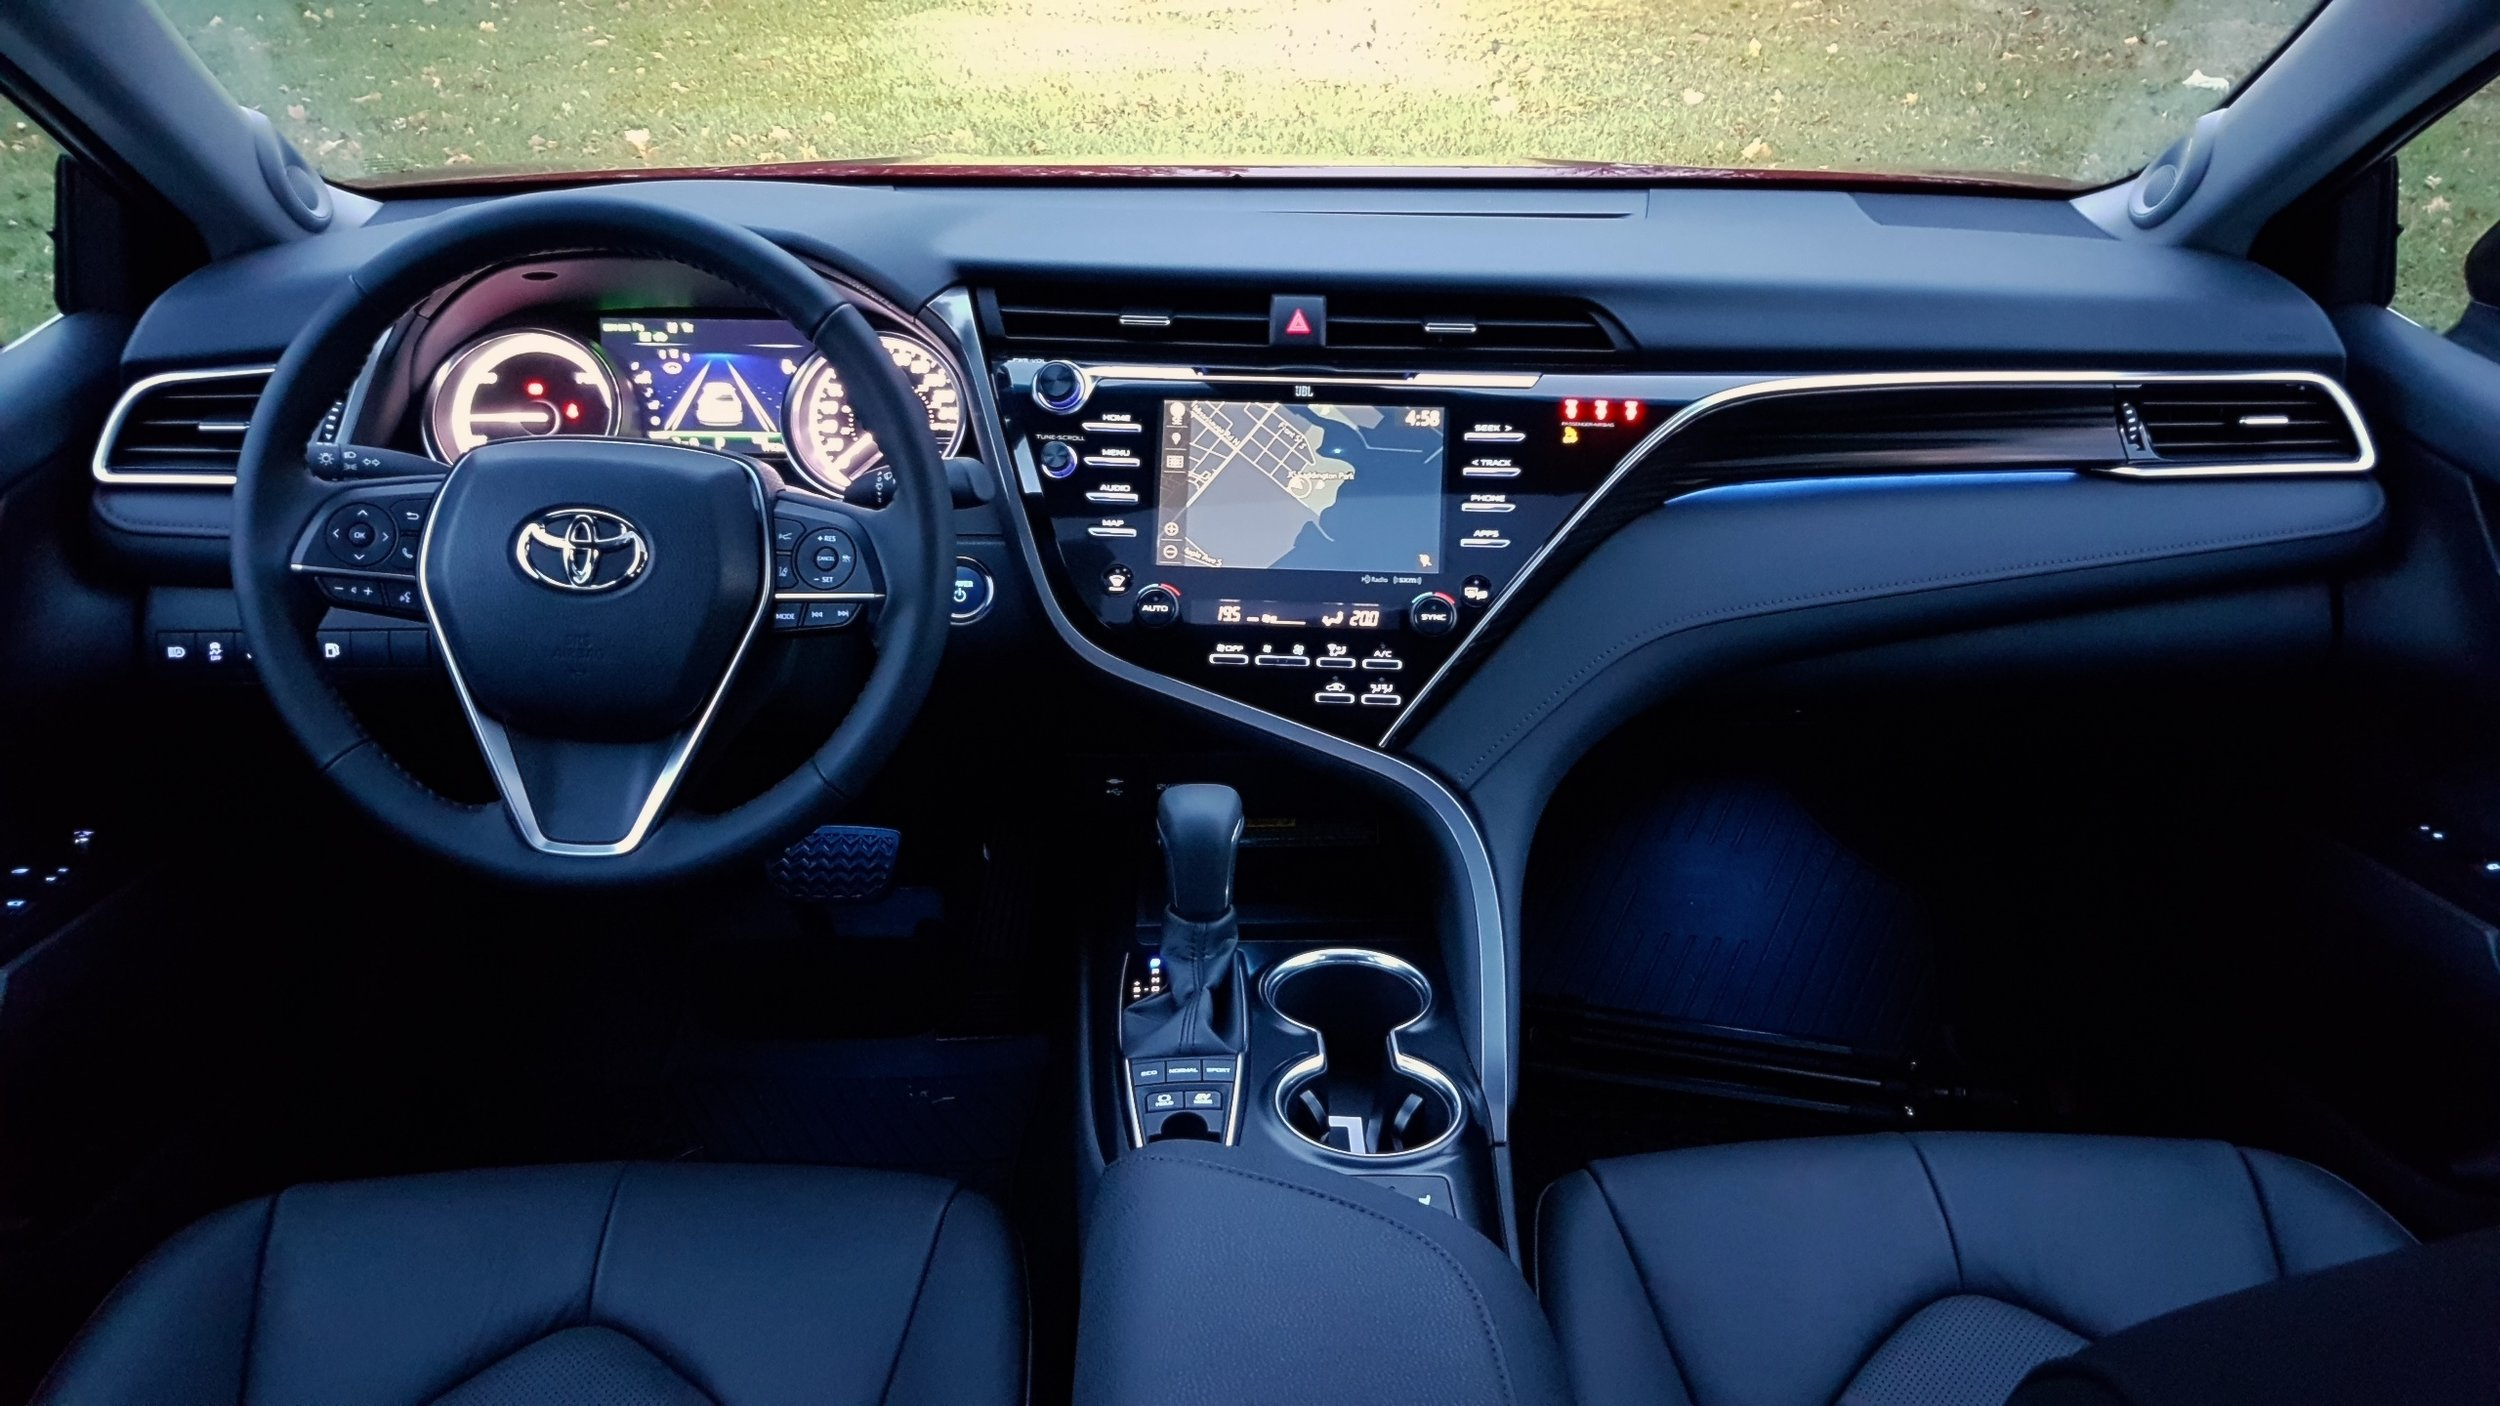 all new camry 2018 interior kekurangan grand avanza veloz 1.3 toyota hybrid xle it s not boring anymore roving proof that an can be futuristic and still have buttons